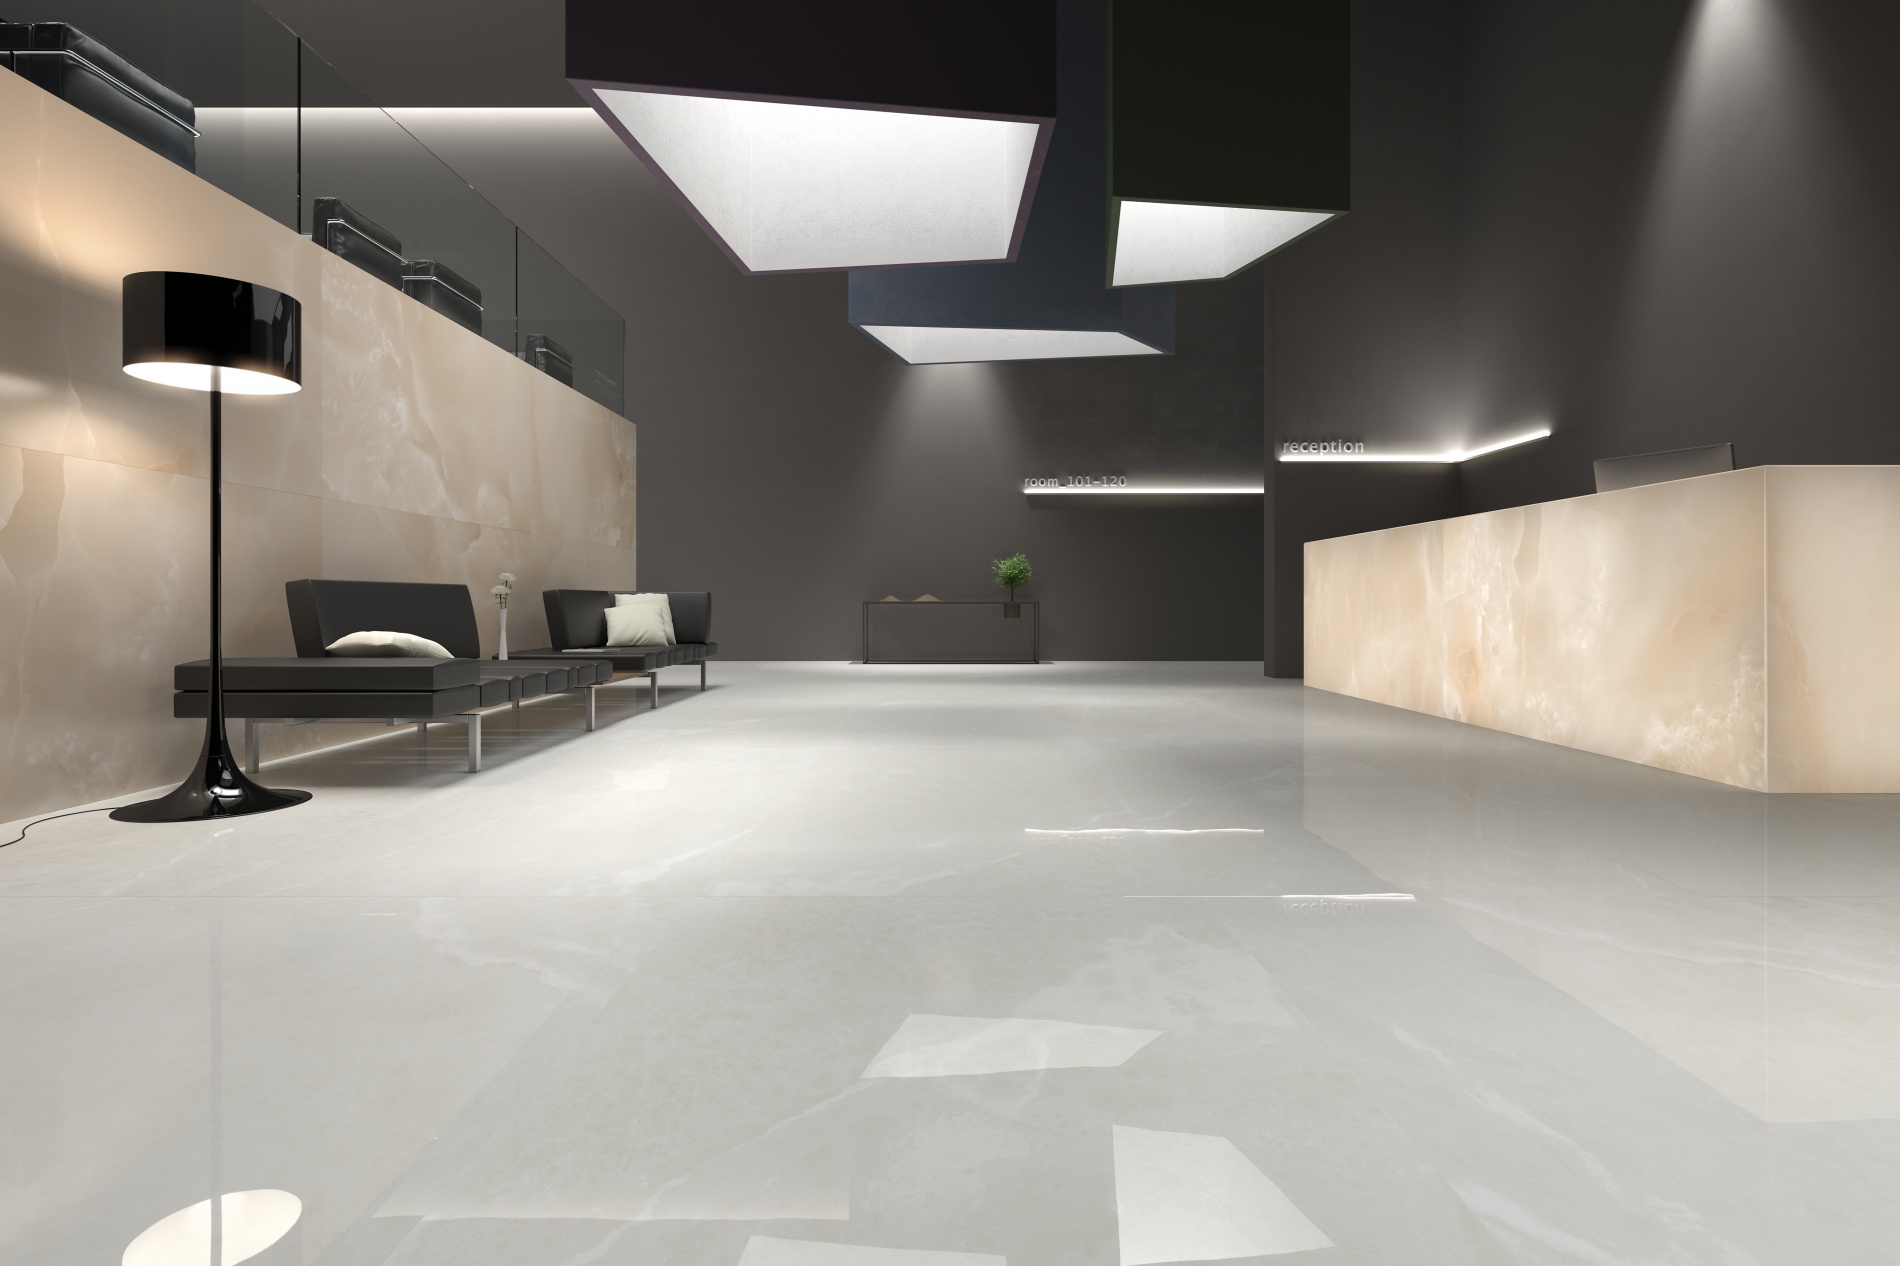 porcelain tile images: Onyx Sense range high quality photo